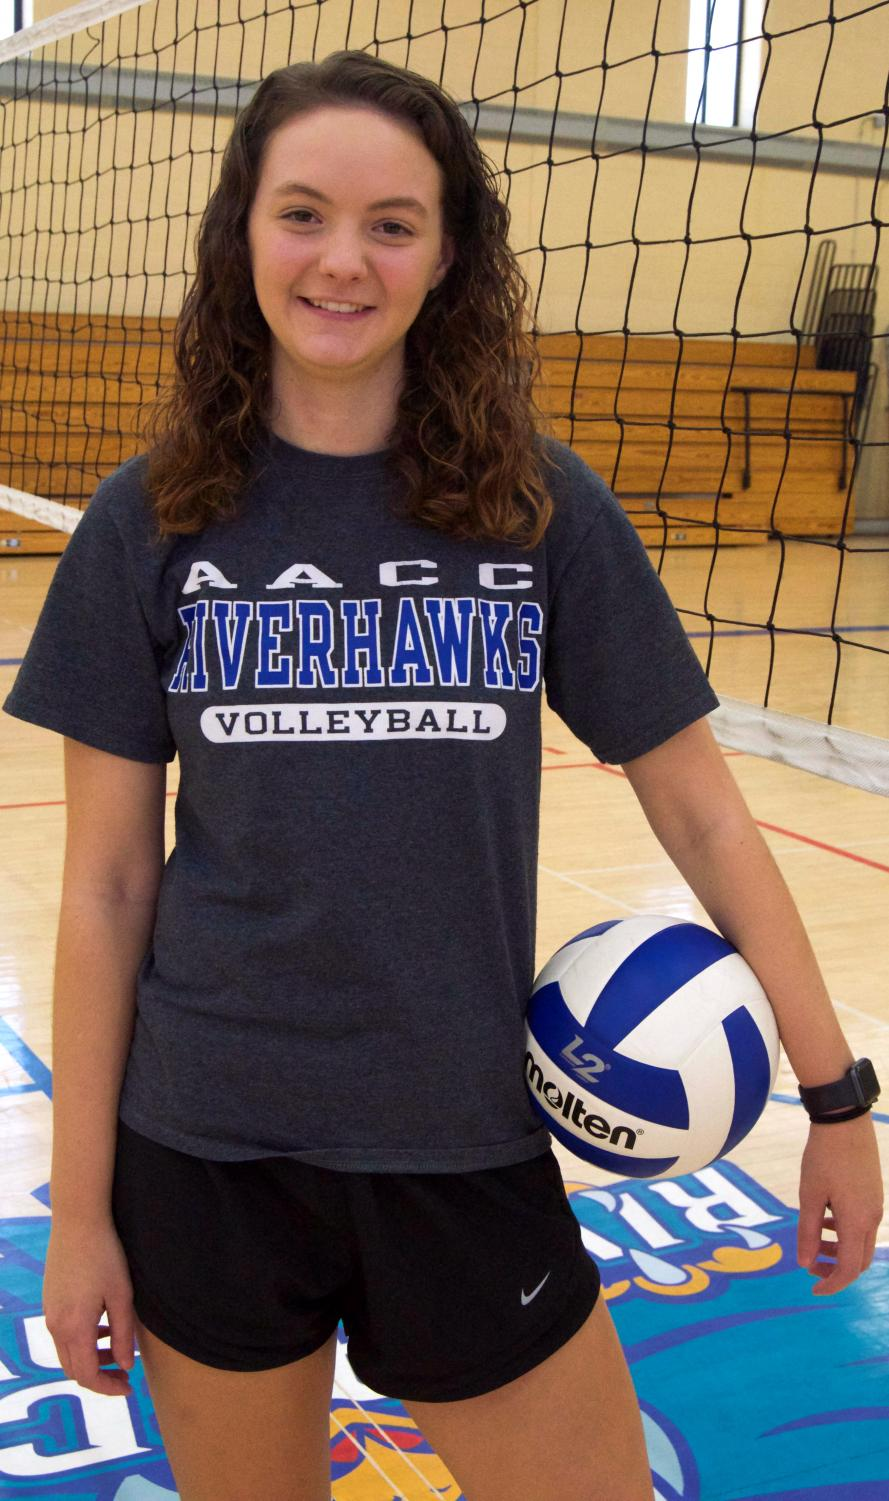 Computer science major Emelyn Wilkerson started the Volleyball Club to teach other people the sport.